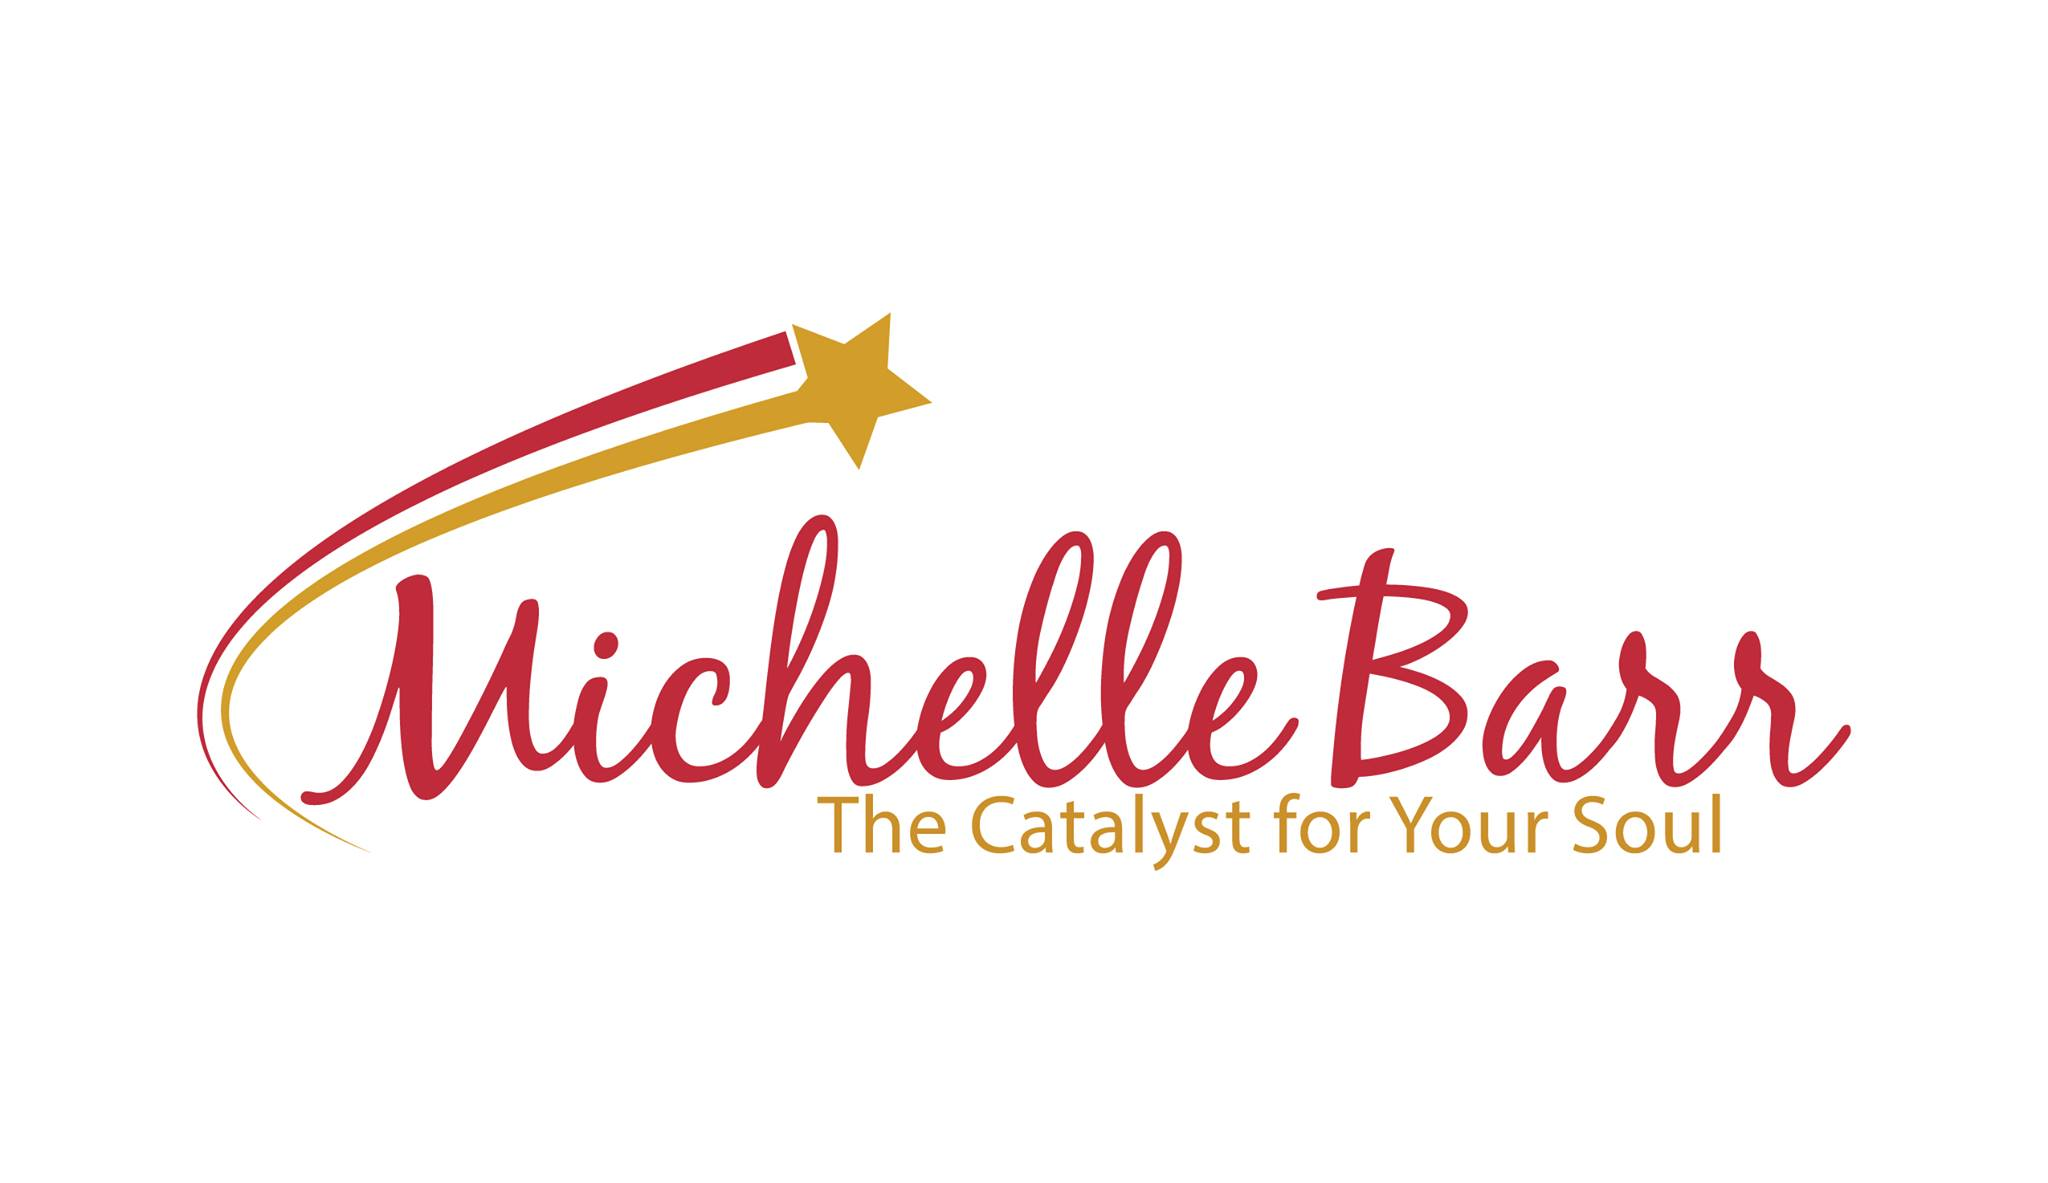 Business Spotlight Interview: Michelle Barr talks with Pat Dougher on The Business Spotlight about what she really does.